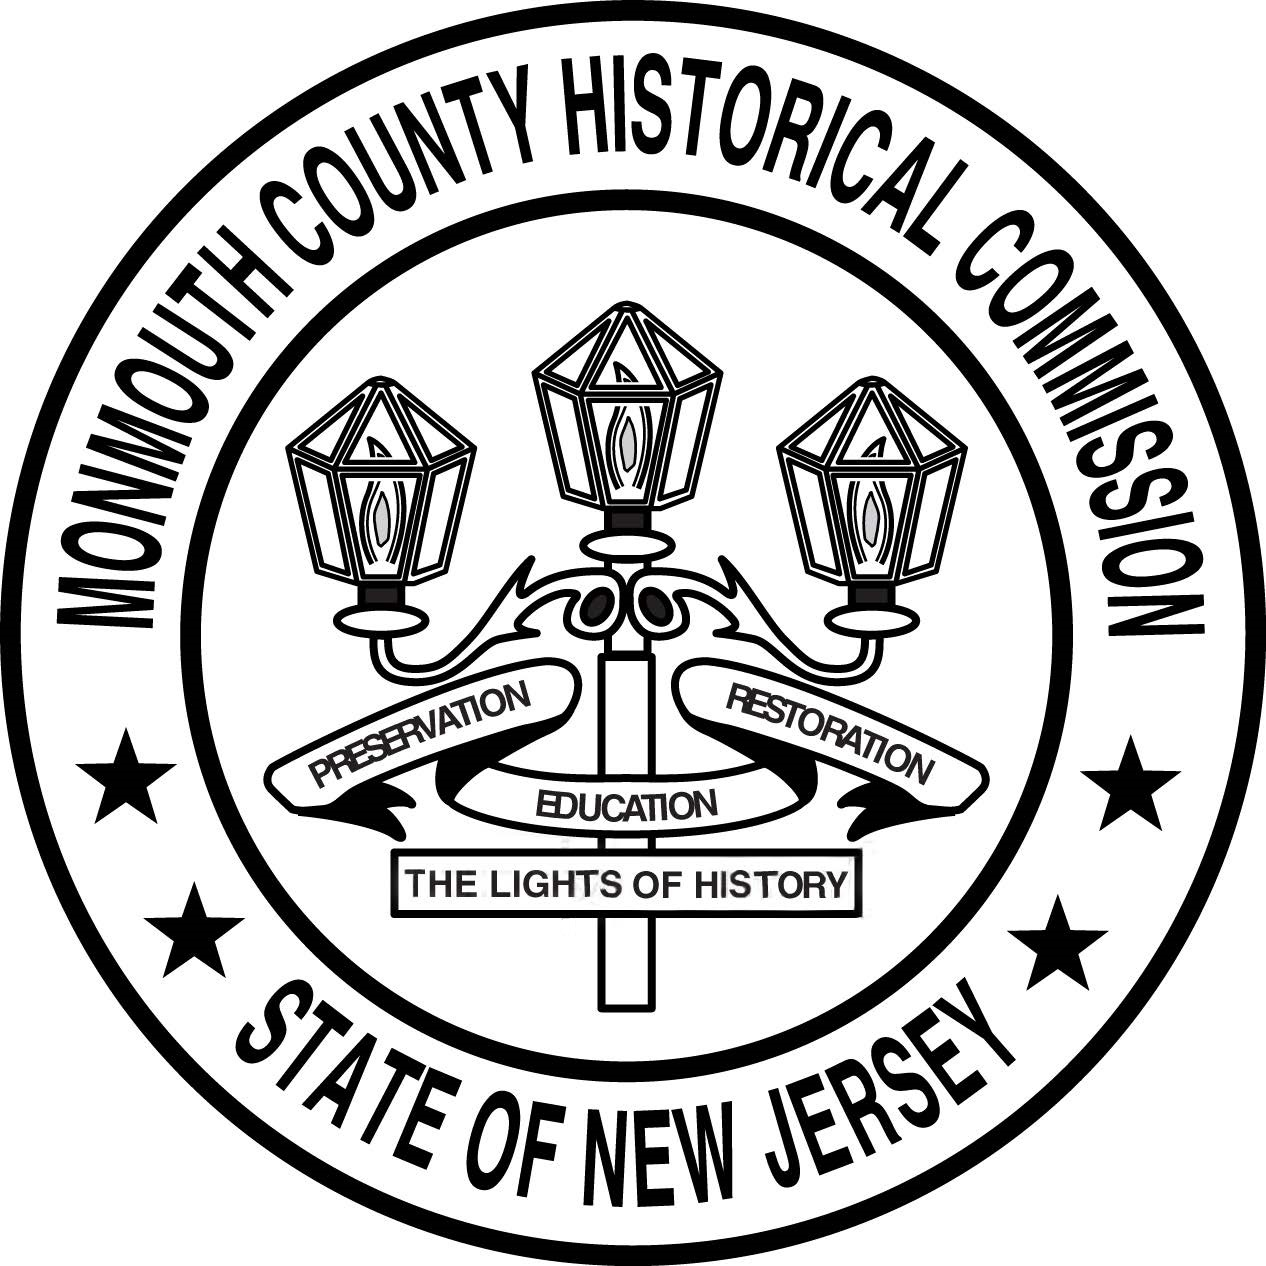 MC Historical Commission Seal